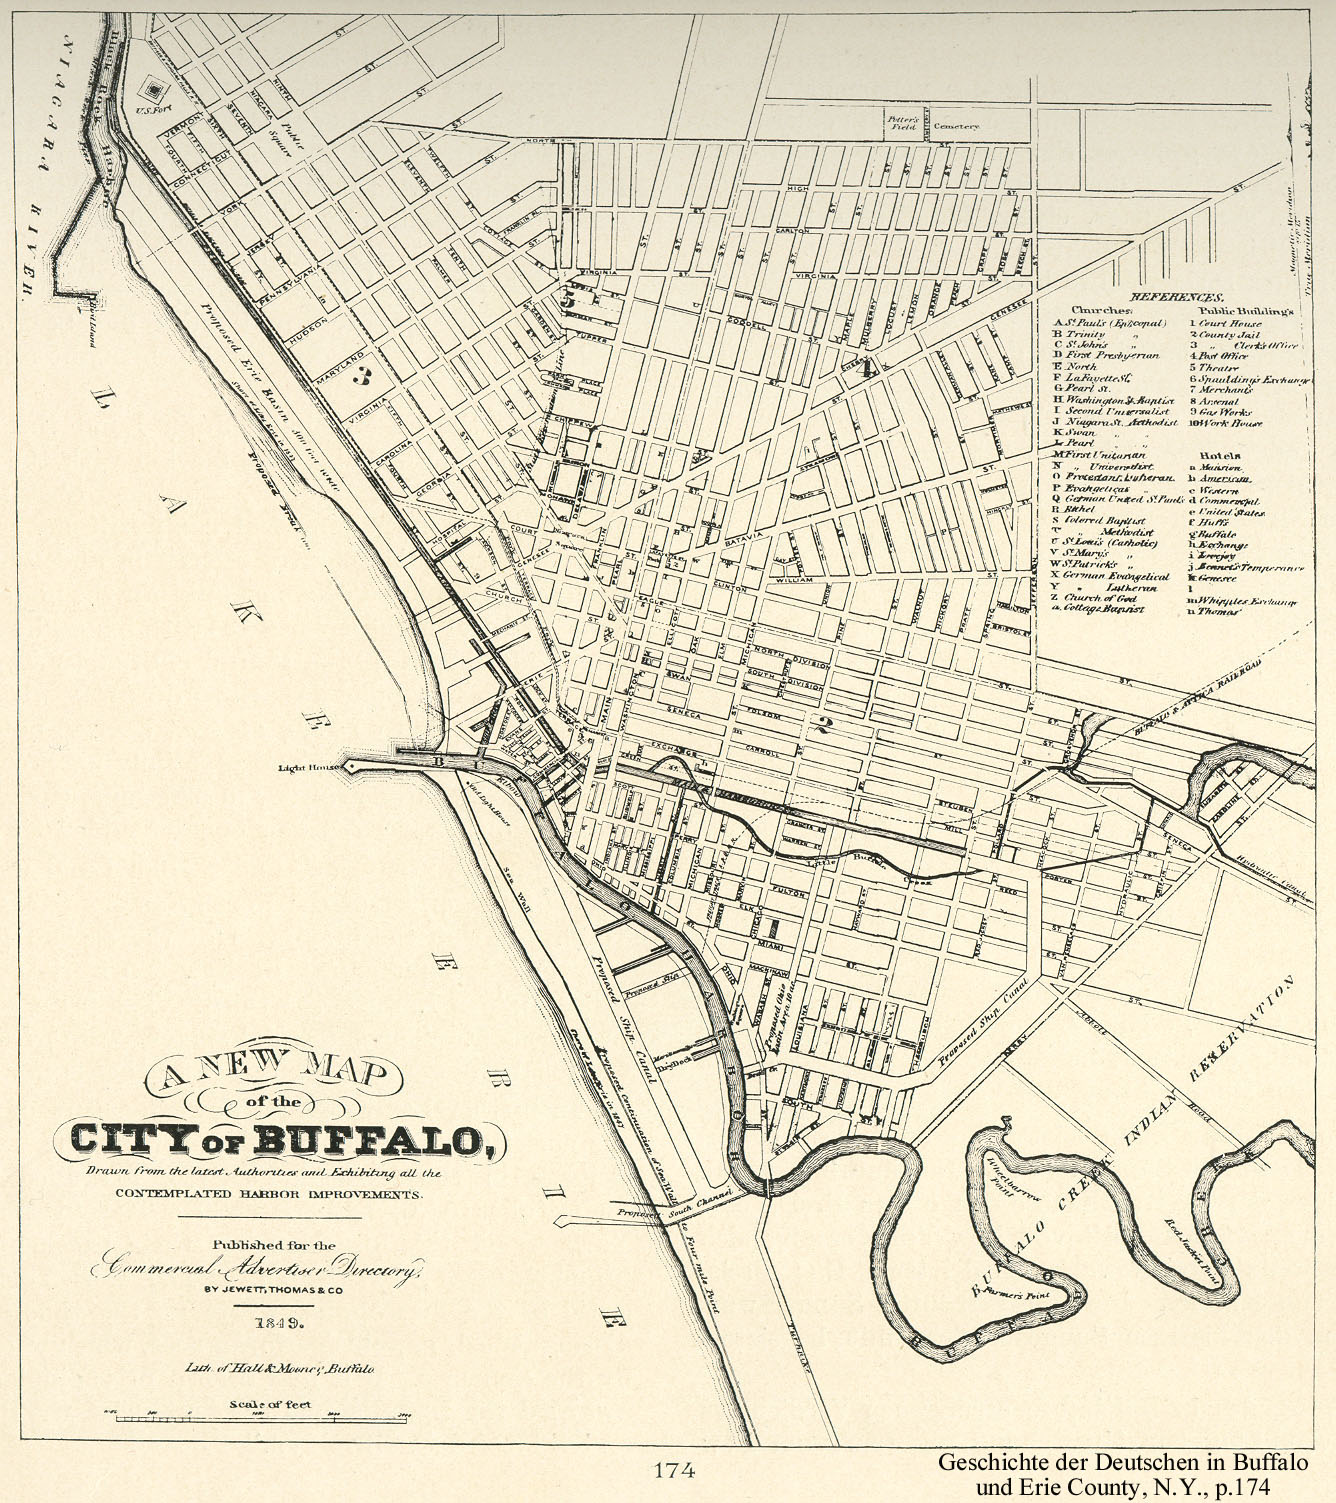 Map of the city of Buffalo, NY 1849